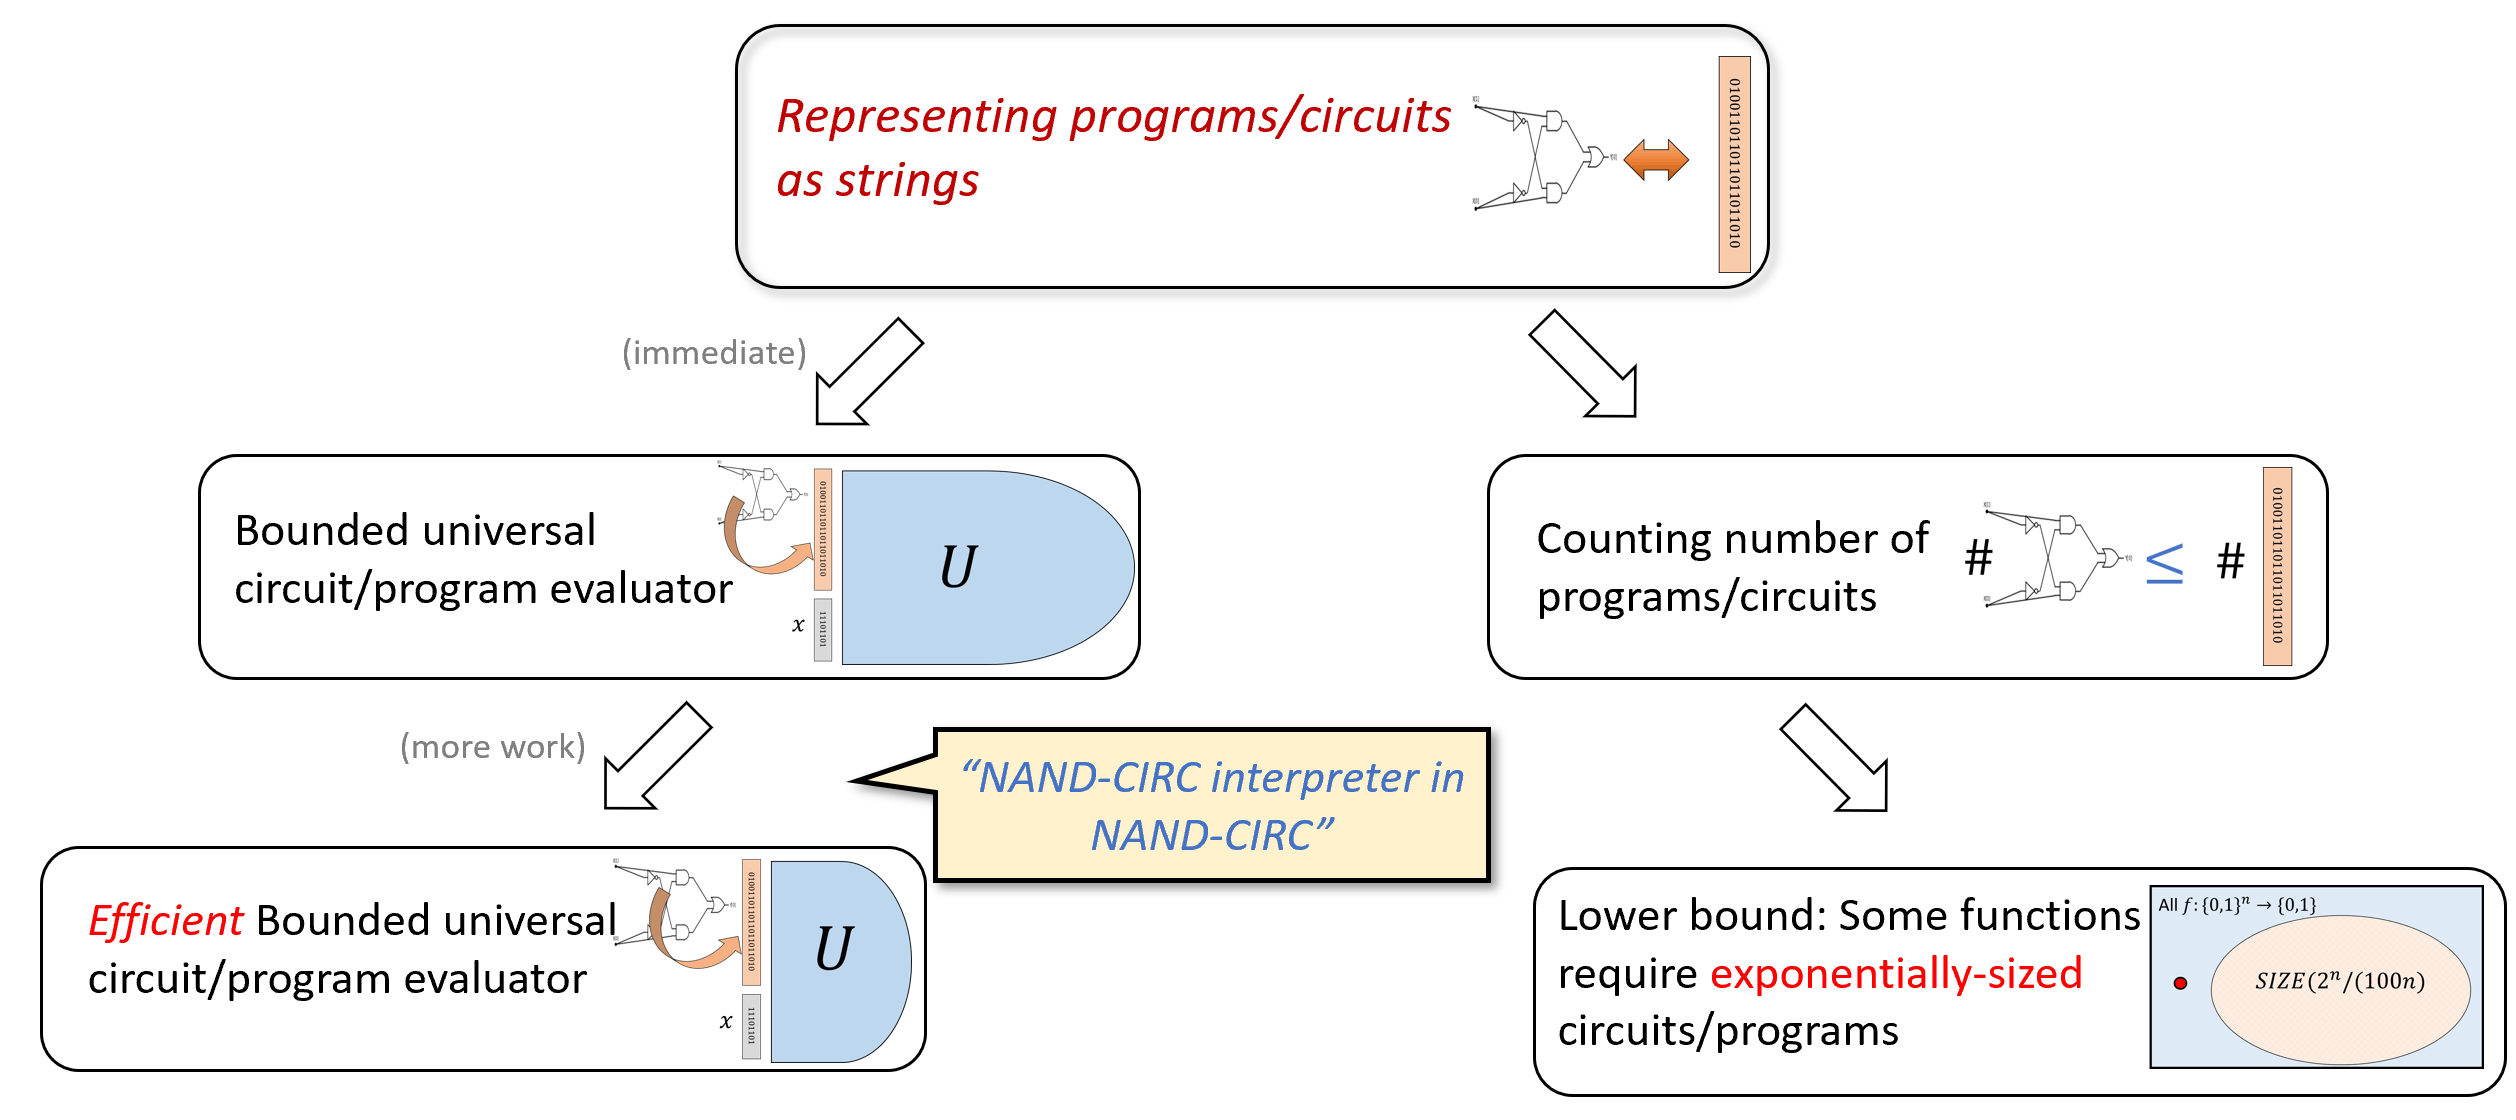 5.2: Overview of the results in this chapter. We use the representation of programs/circuits as strings to derive two main results. First we show the existence of a universal program/circuit, and in fact (with more work) the existence of such a program/circuit whose size is at most polynomial in the size of the program/circuit it evaluates. We then use the string representation to count the number of programs/circuits of a given size, and use that to establish that some functions require an exponential number of lines/gates to compute.